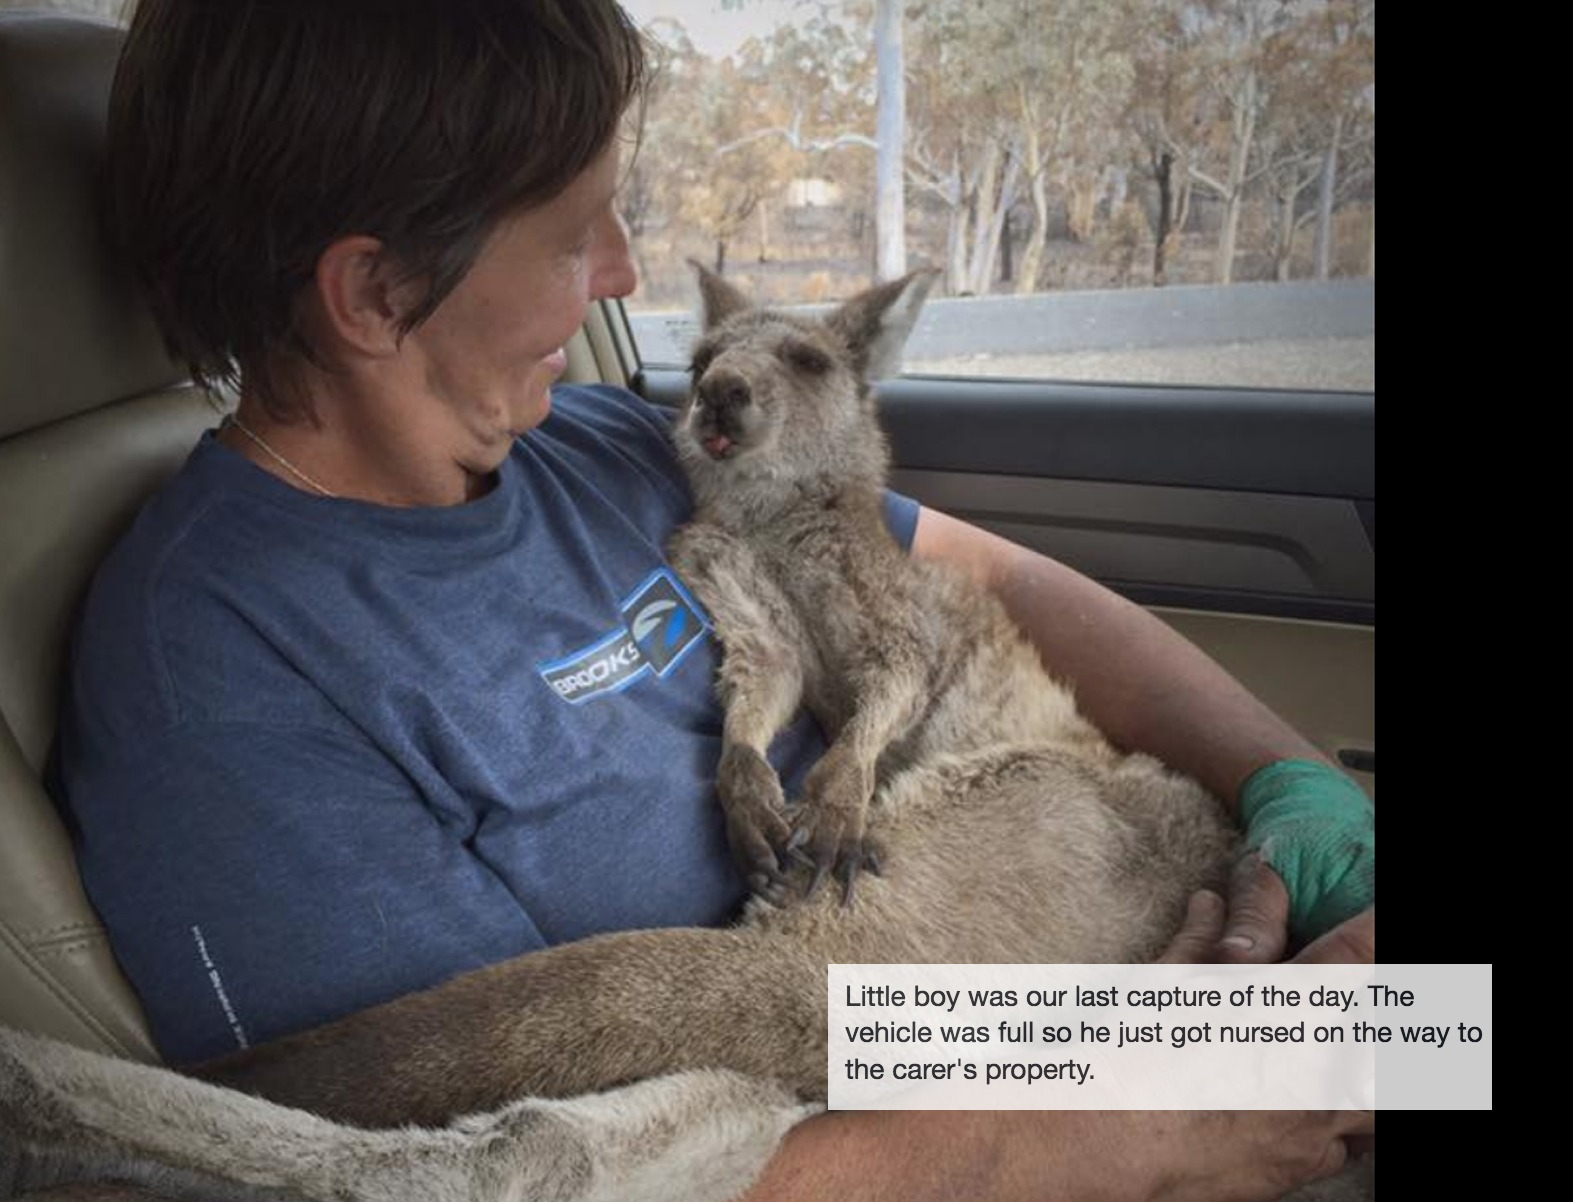 Thank you meditation for saving Australian wildlife that has survived the wildfires